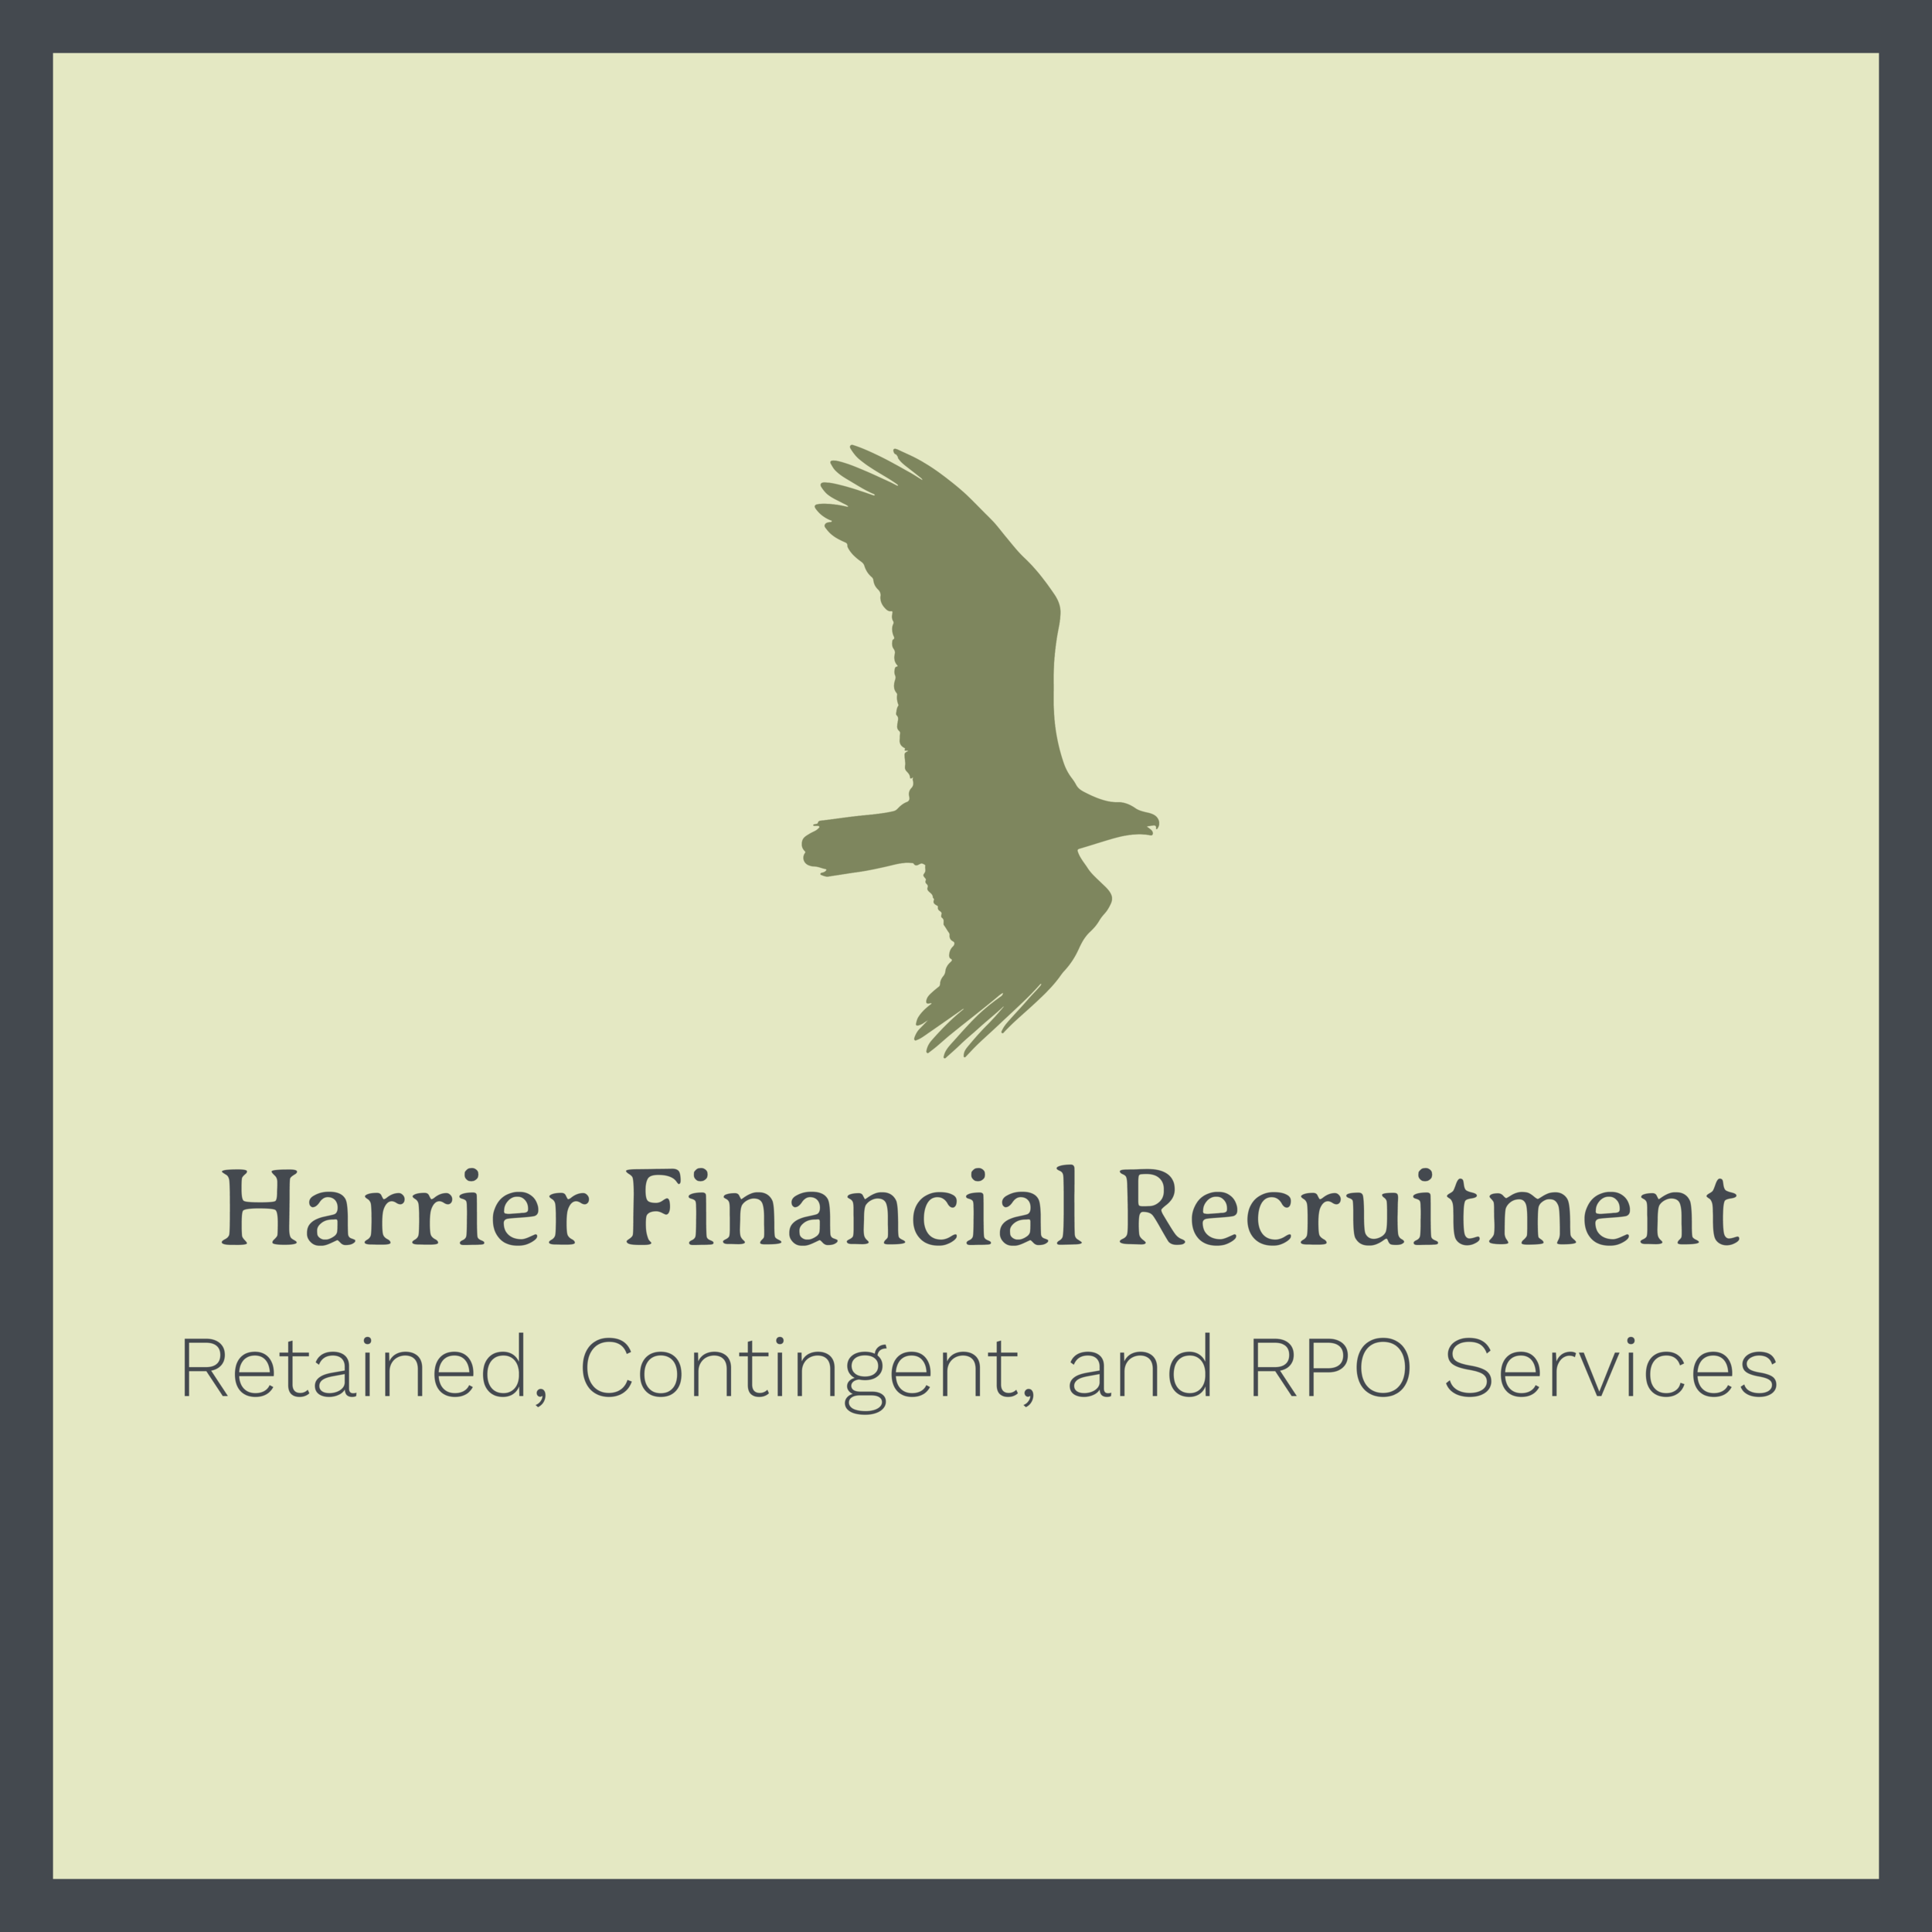 Harrier Financial Recruitment - Harrier Financial Recruitment™ provides finance, tax, accounting and audit professionals through either retained, contingent, or RPO delivery methods.